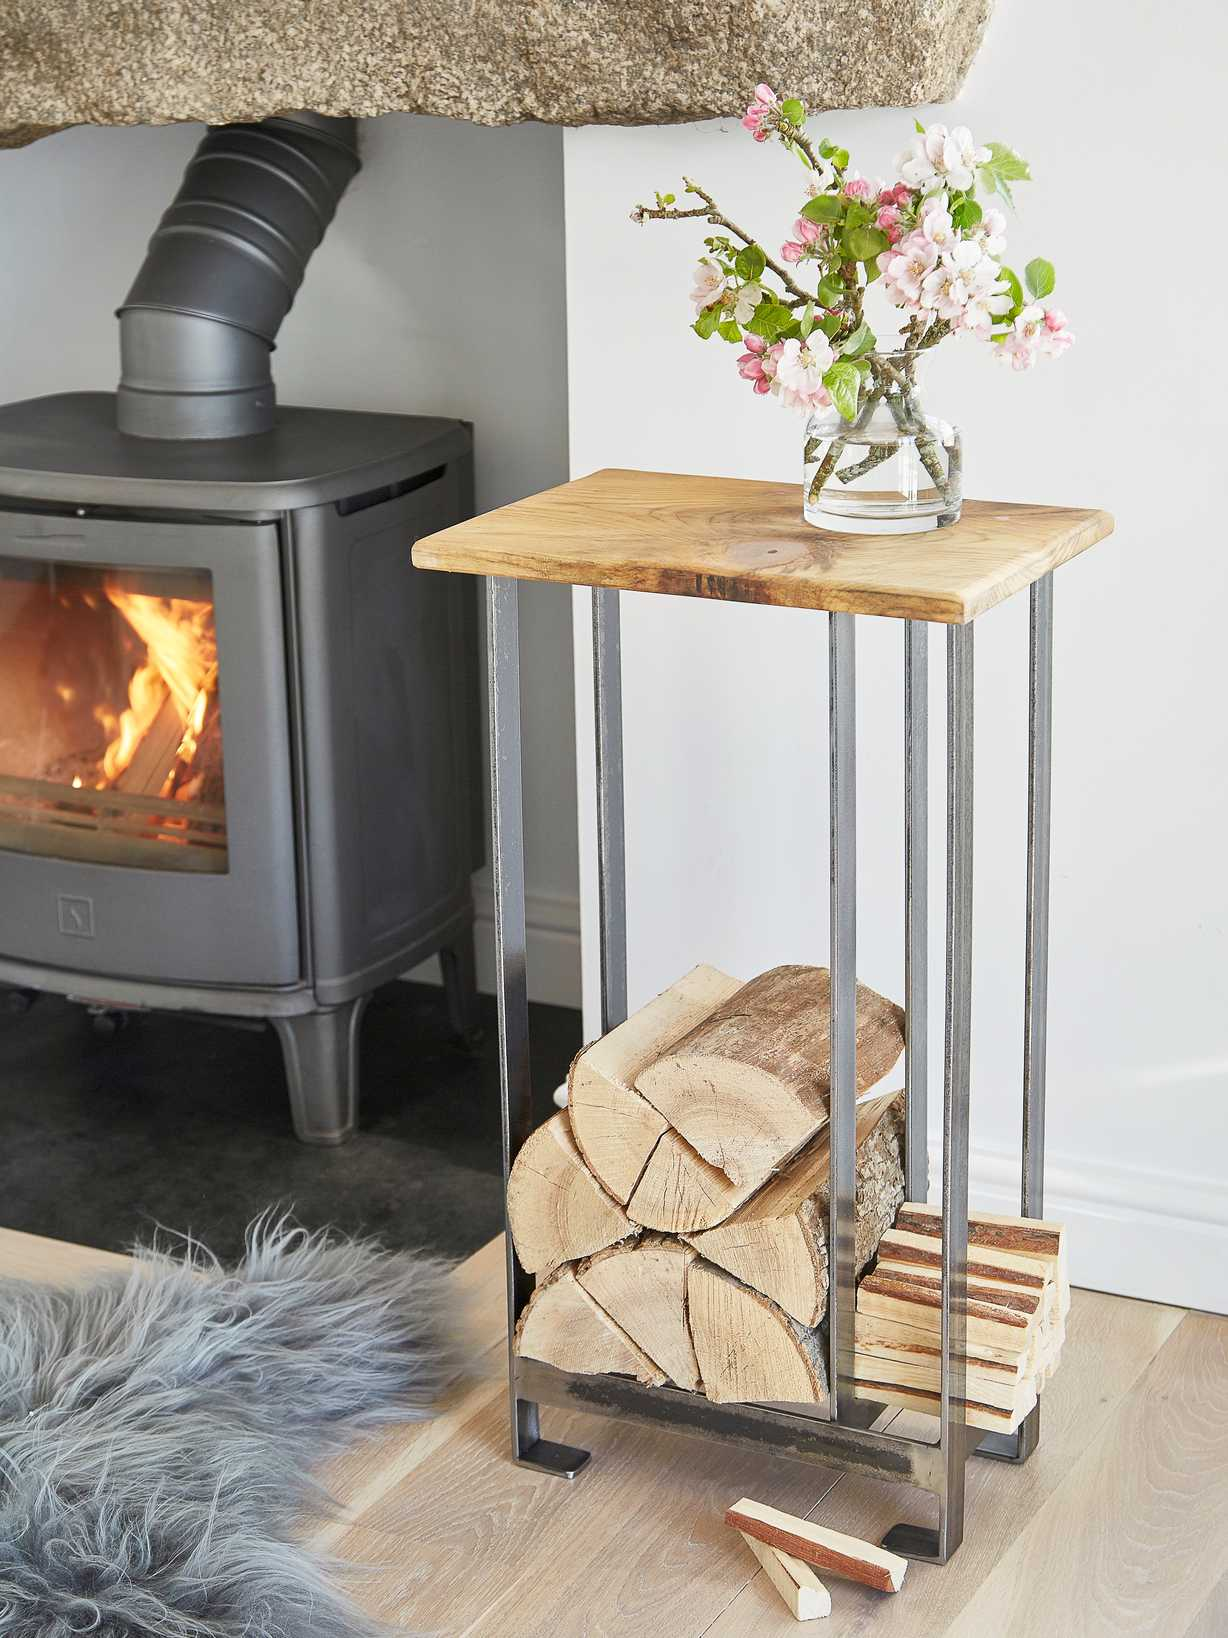 Nordic House Hand-Crafted Log and Kindling Table